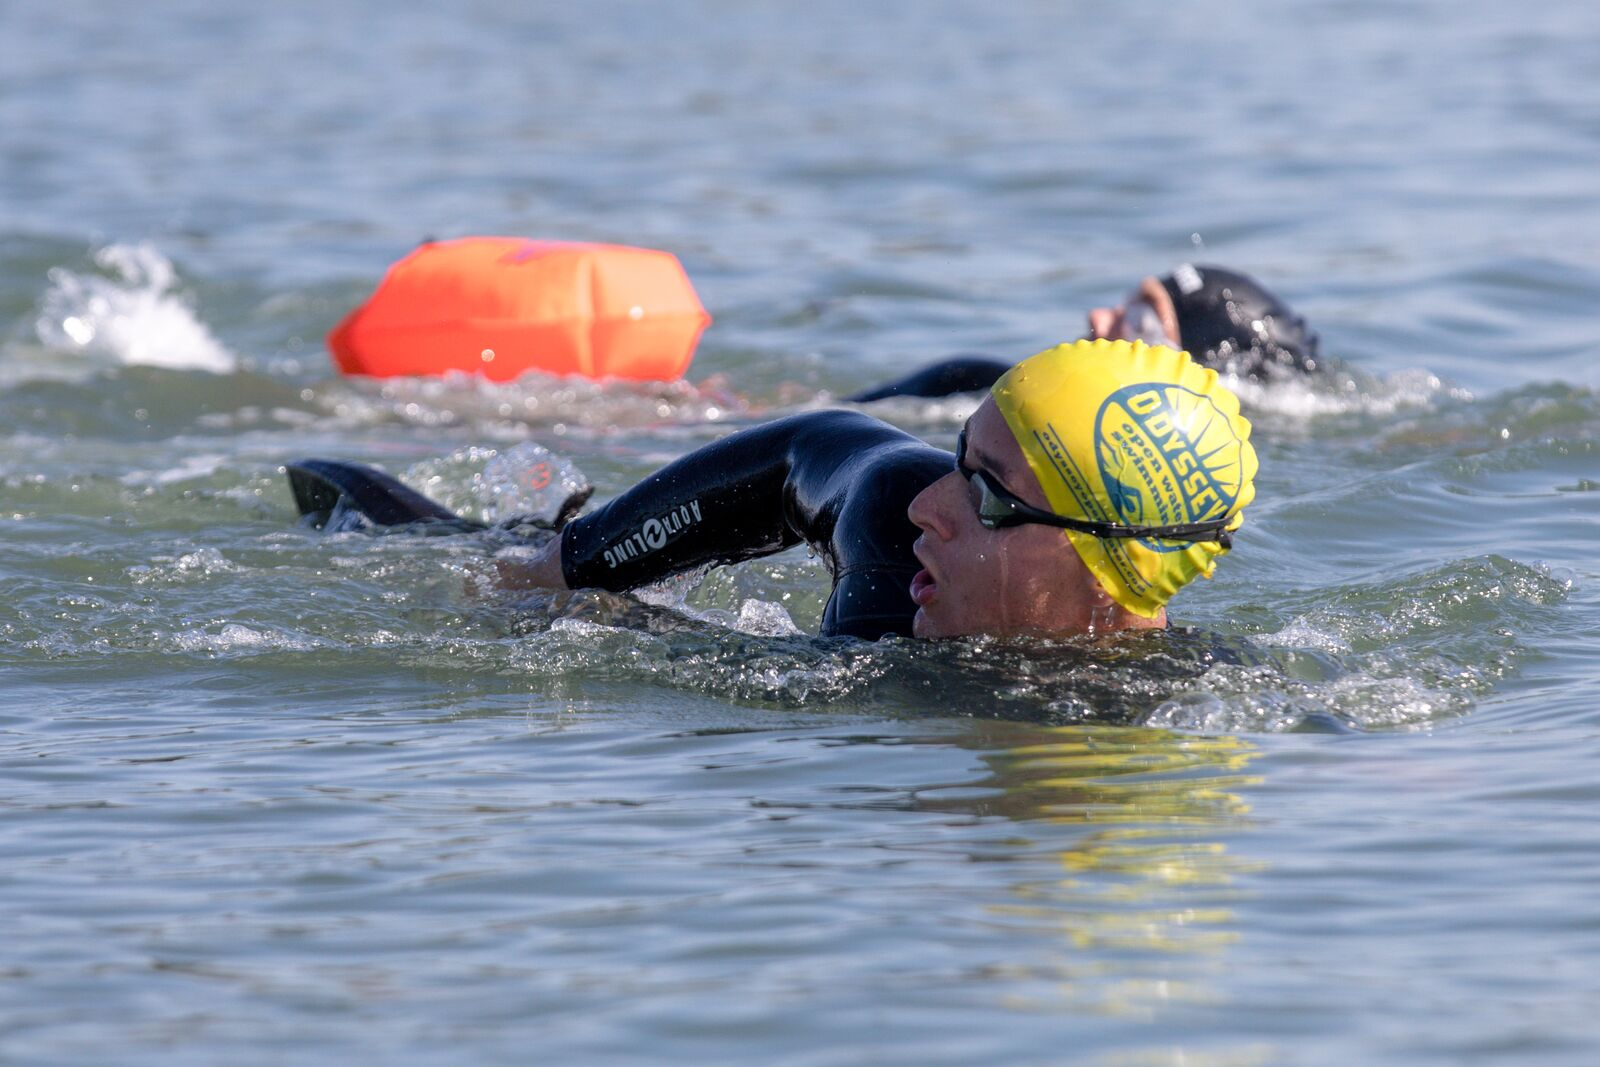 Odyssey open water swimming in the South Sailing Basin at the Berkeley Marina on September 19, 2021. Credit: Kelly Sullivan